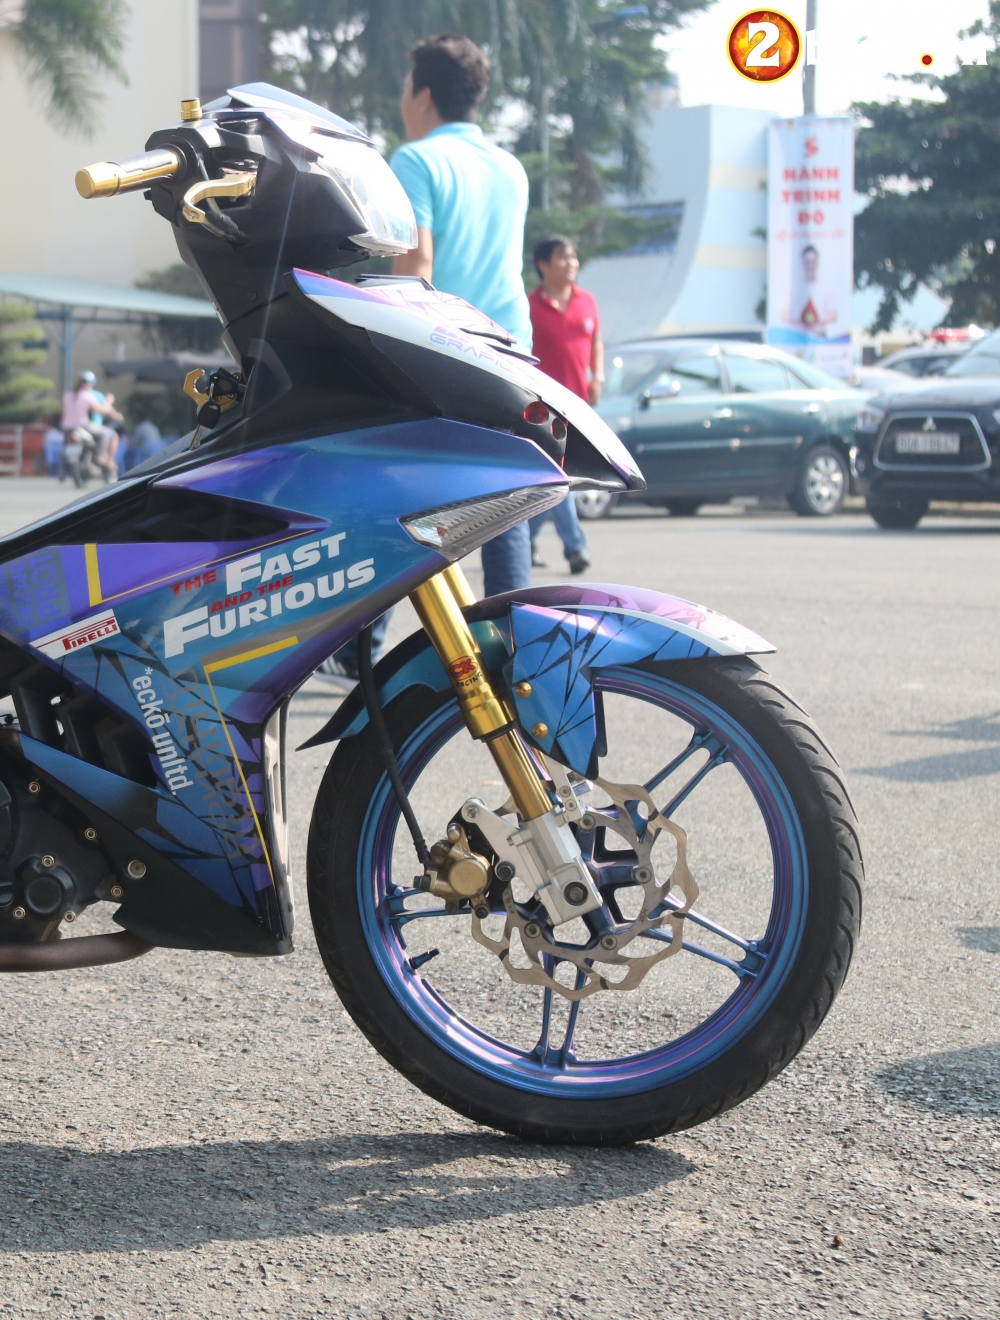 Exciter 150 kieng nhe an tuong voi bo canh Fast and Furious - 4